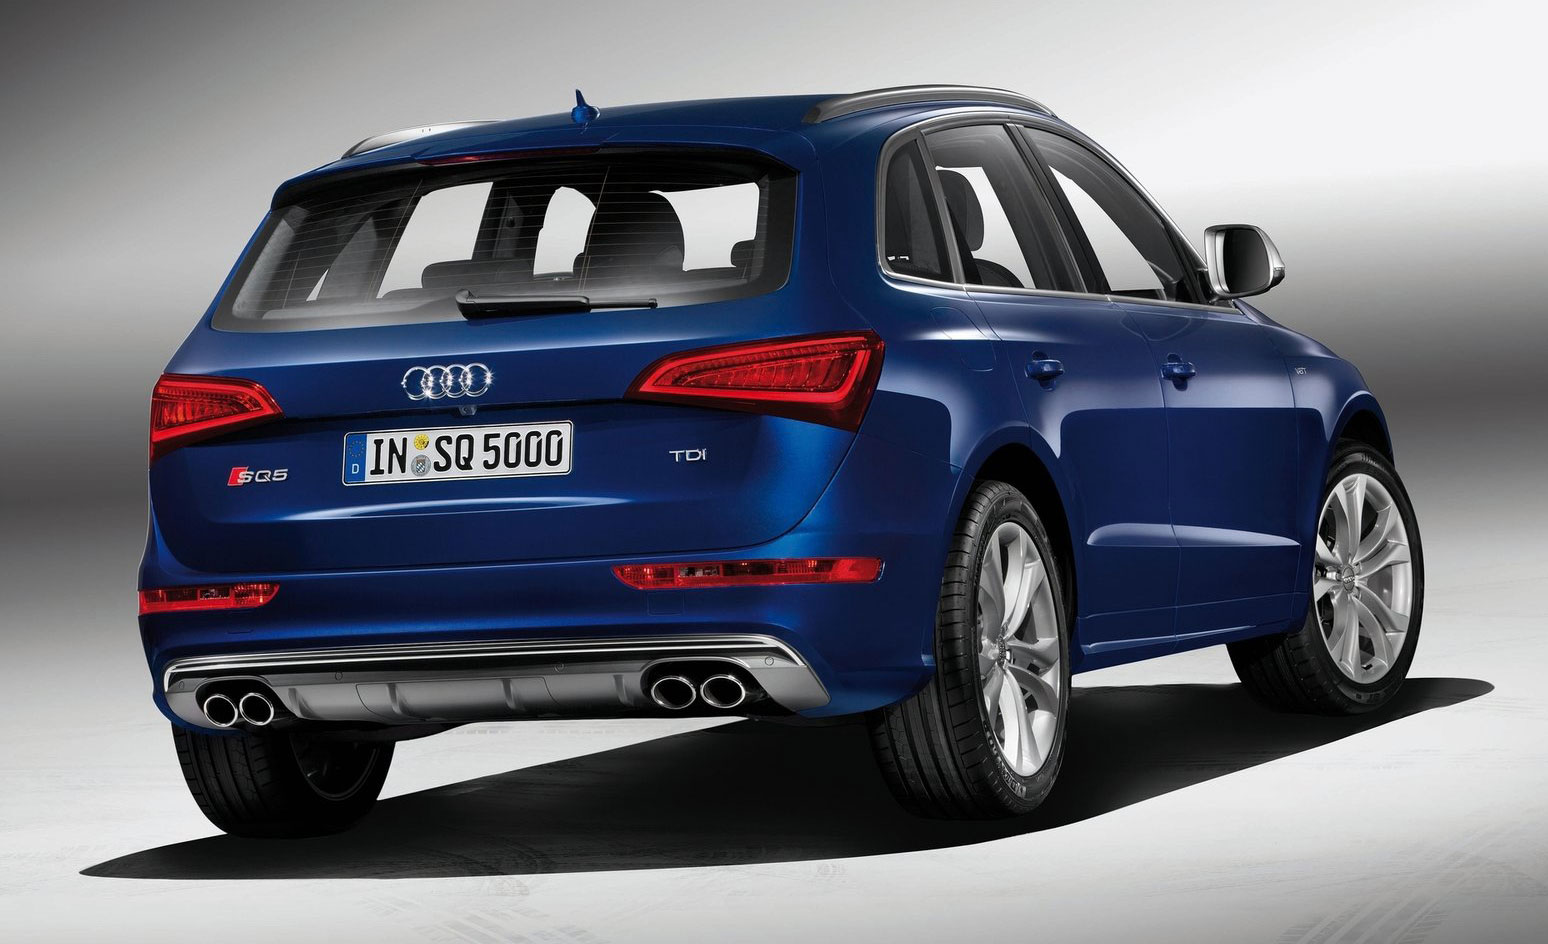 audi sq5 tdi the first diesel powered s car paul tan image 112909. Black Bedroom Furniture Sets. Home Design Ideas